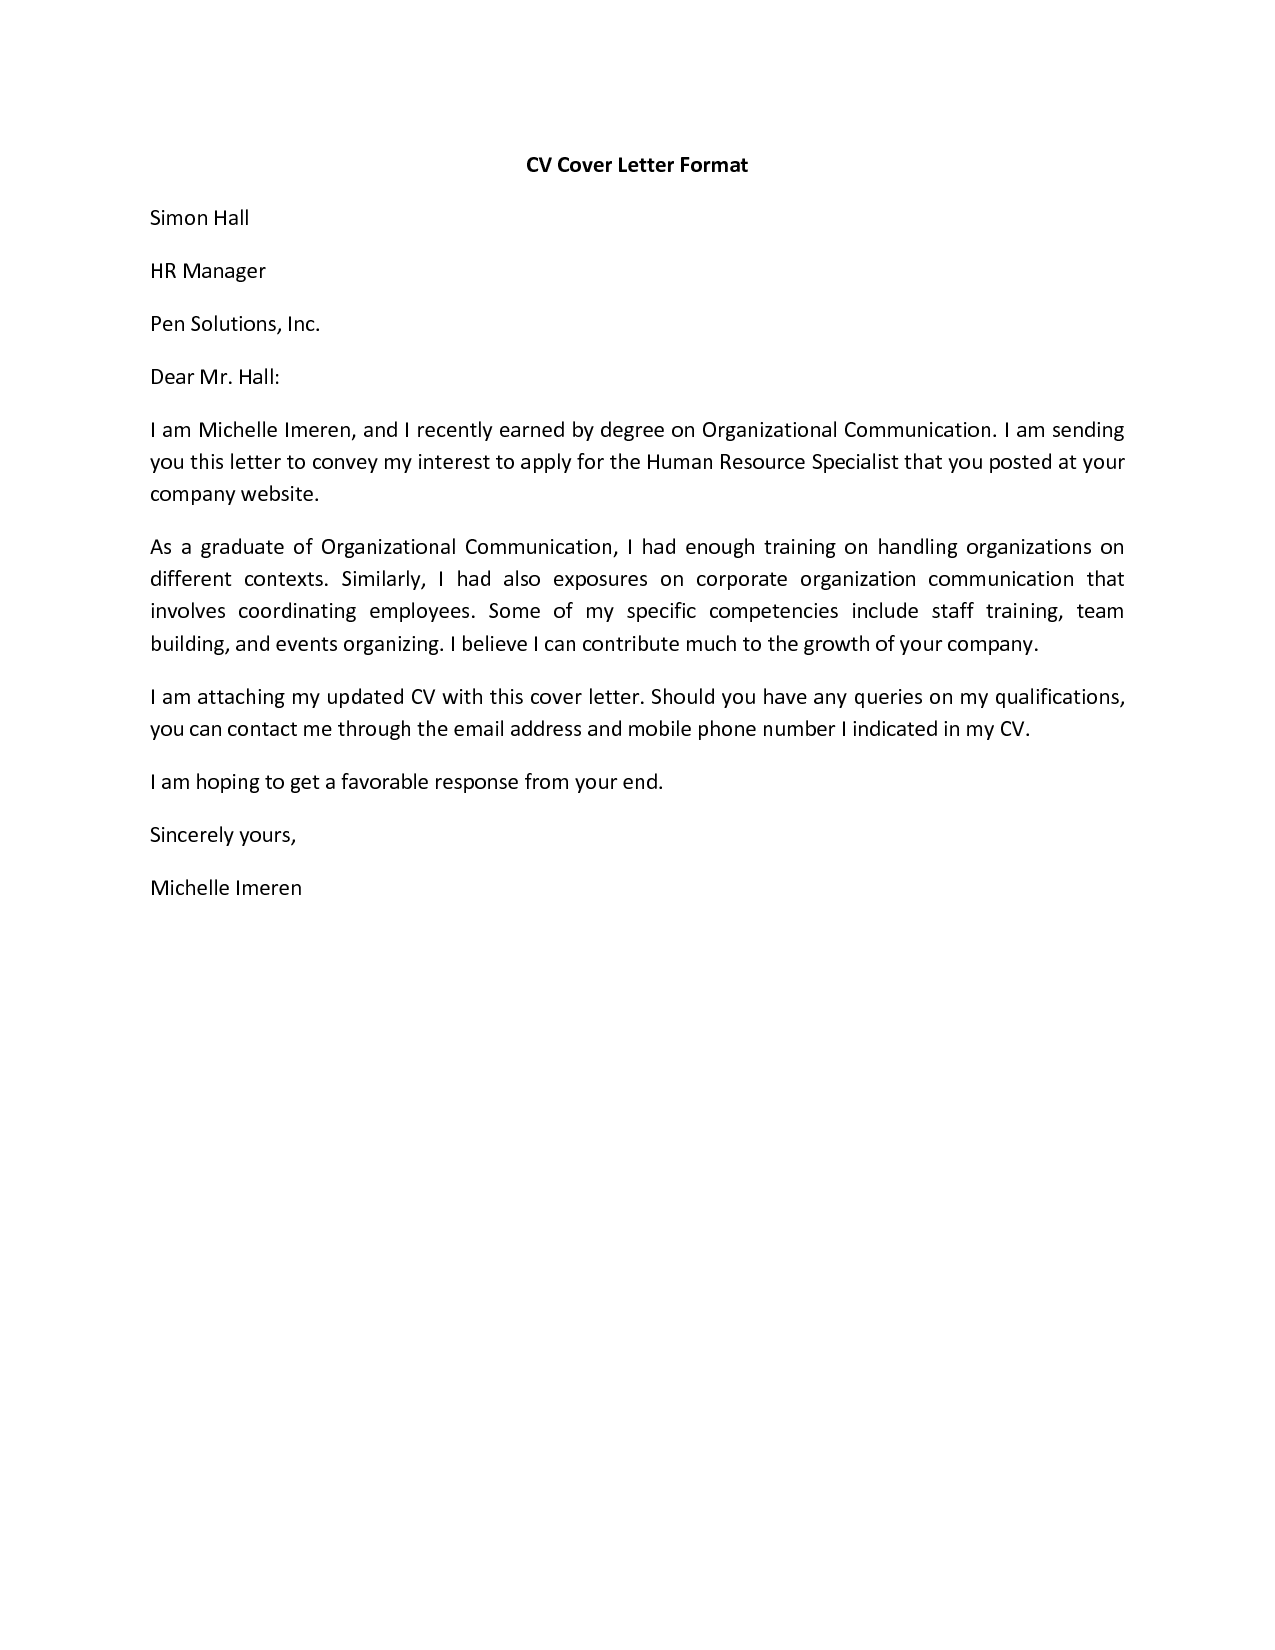 Cover letter for resume rich image and wallpaper for How to complete a cover letter for a resume